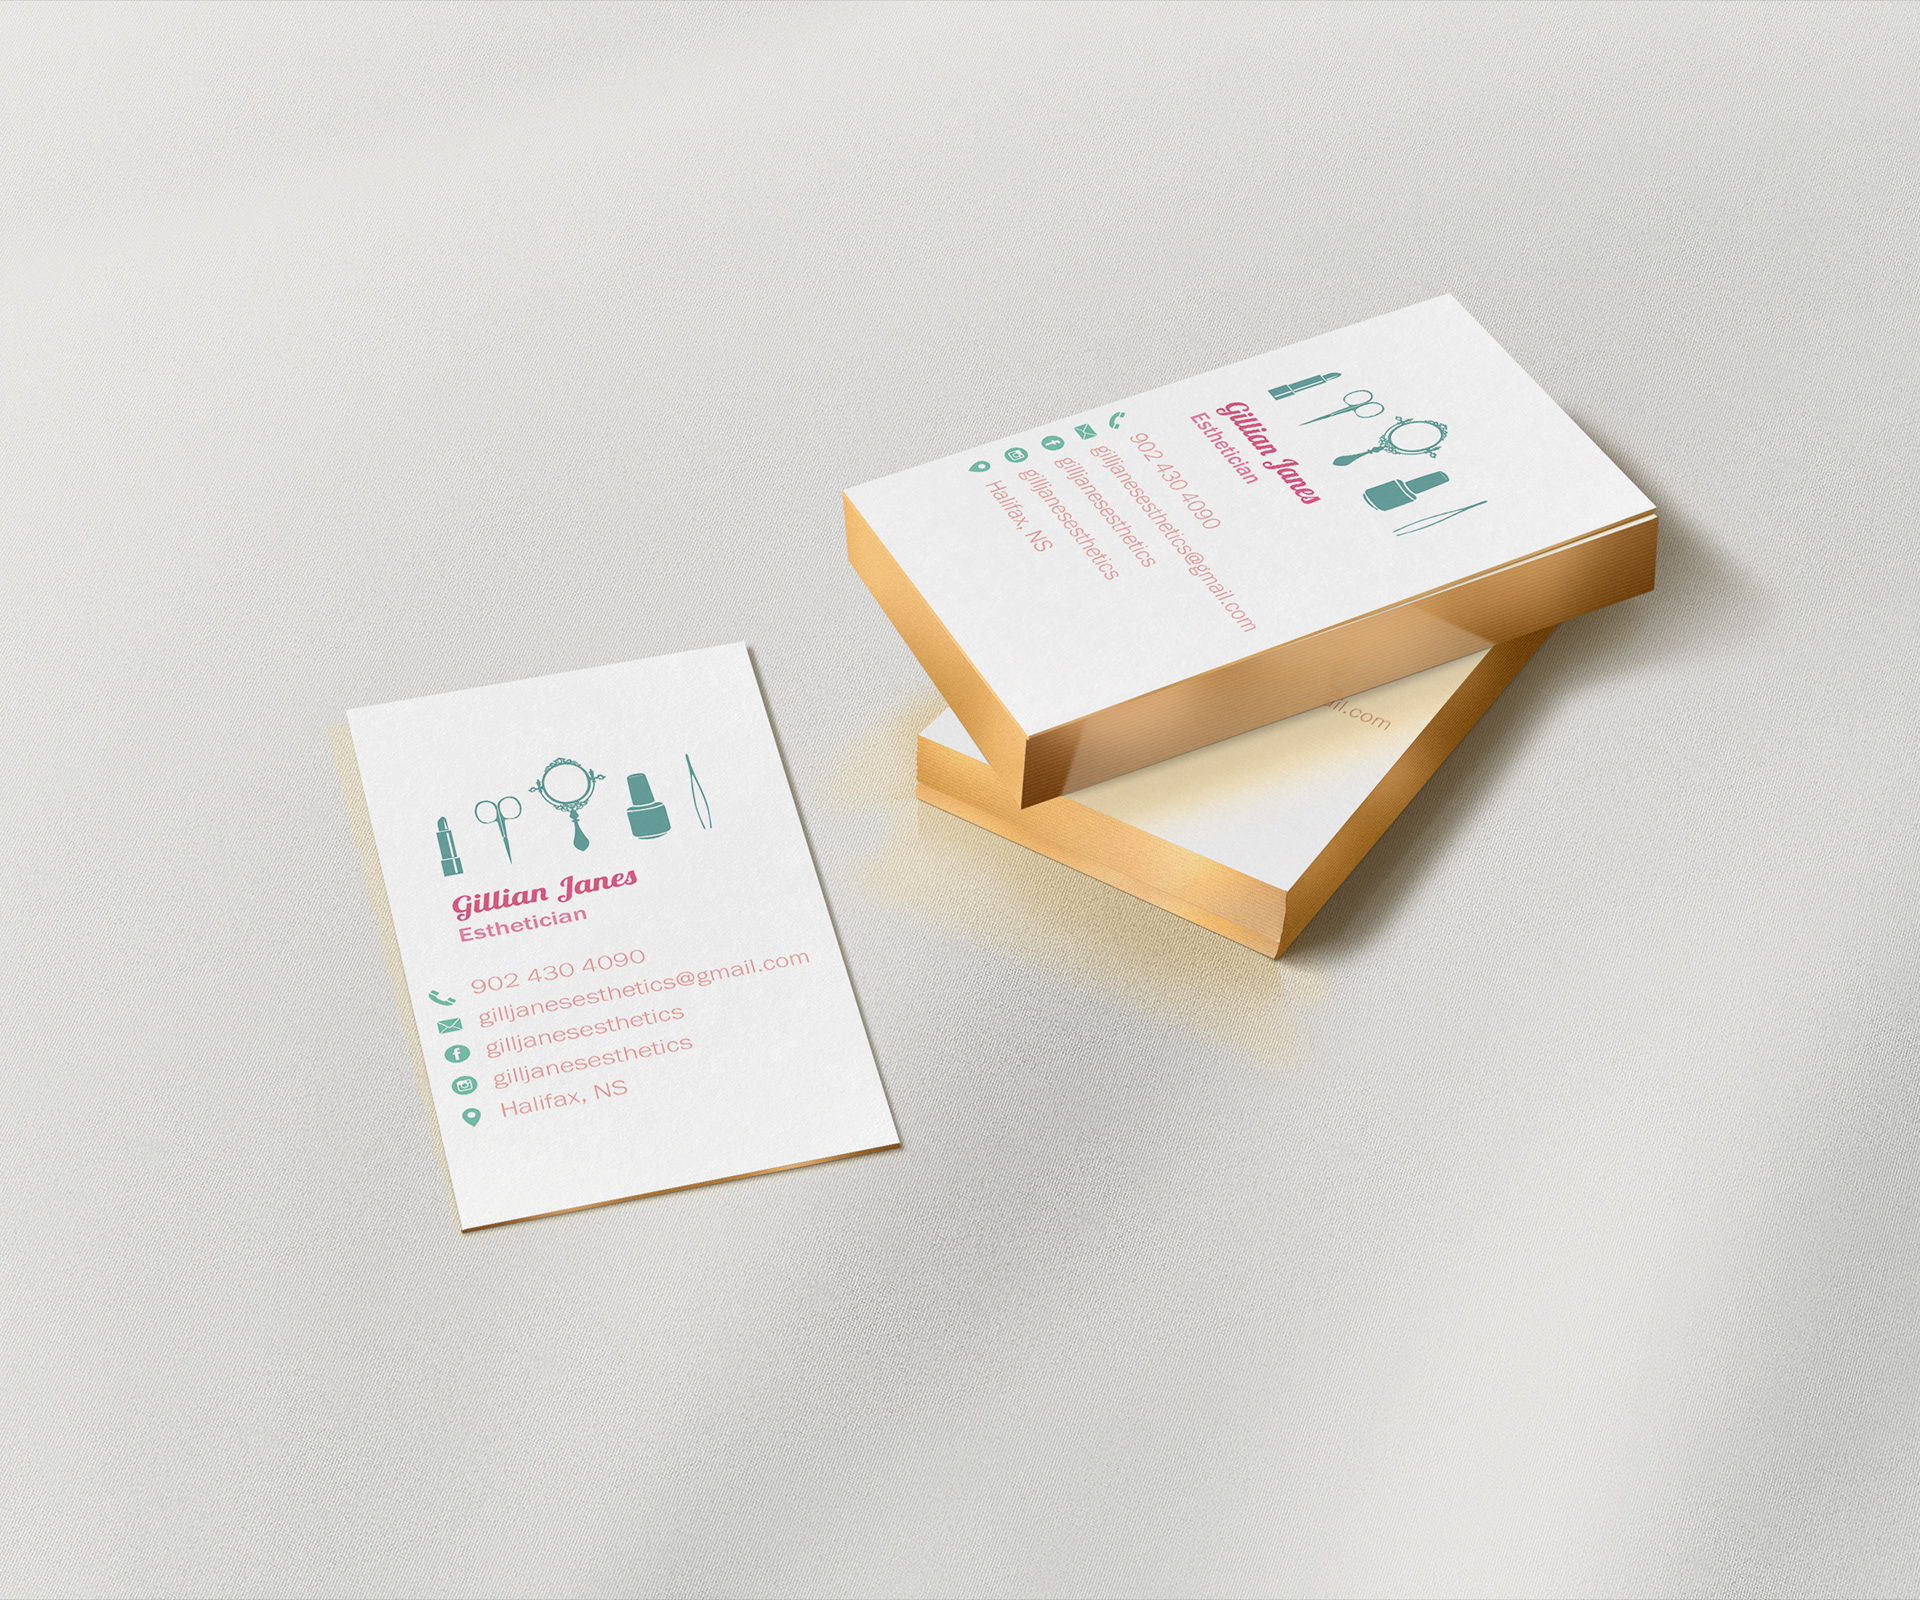 Jessamyn Vanechuk - Esthetician Business Cards